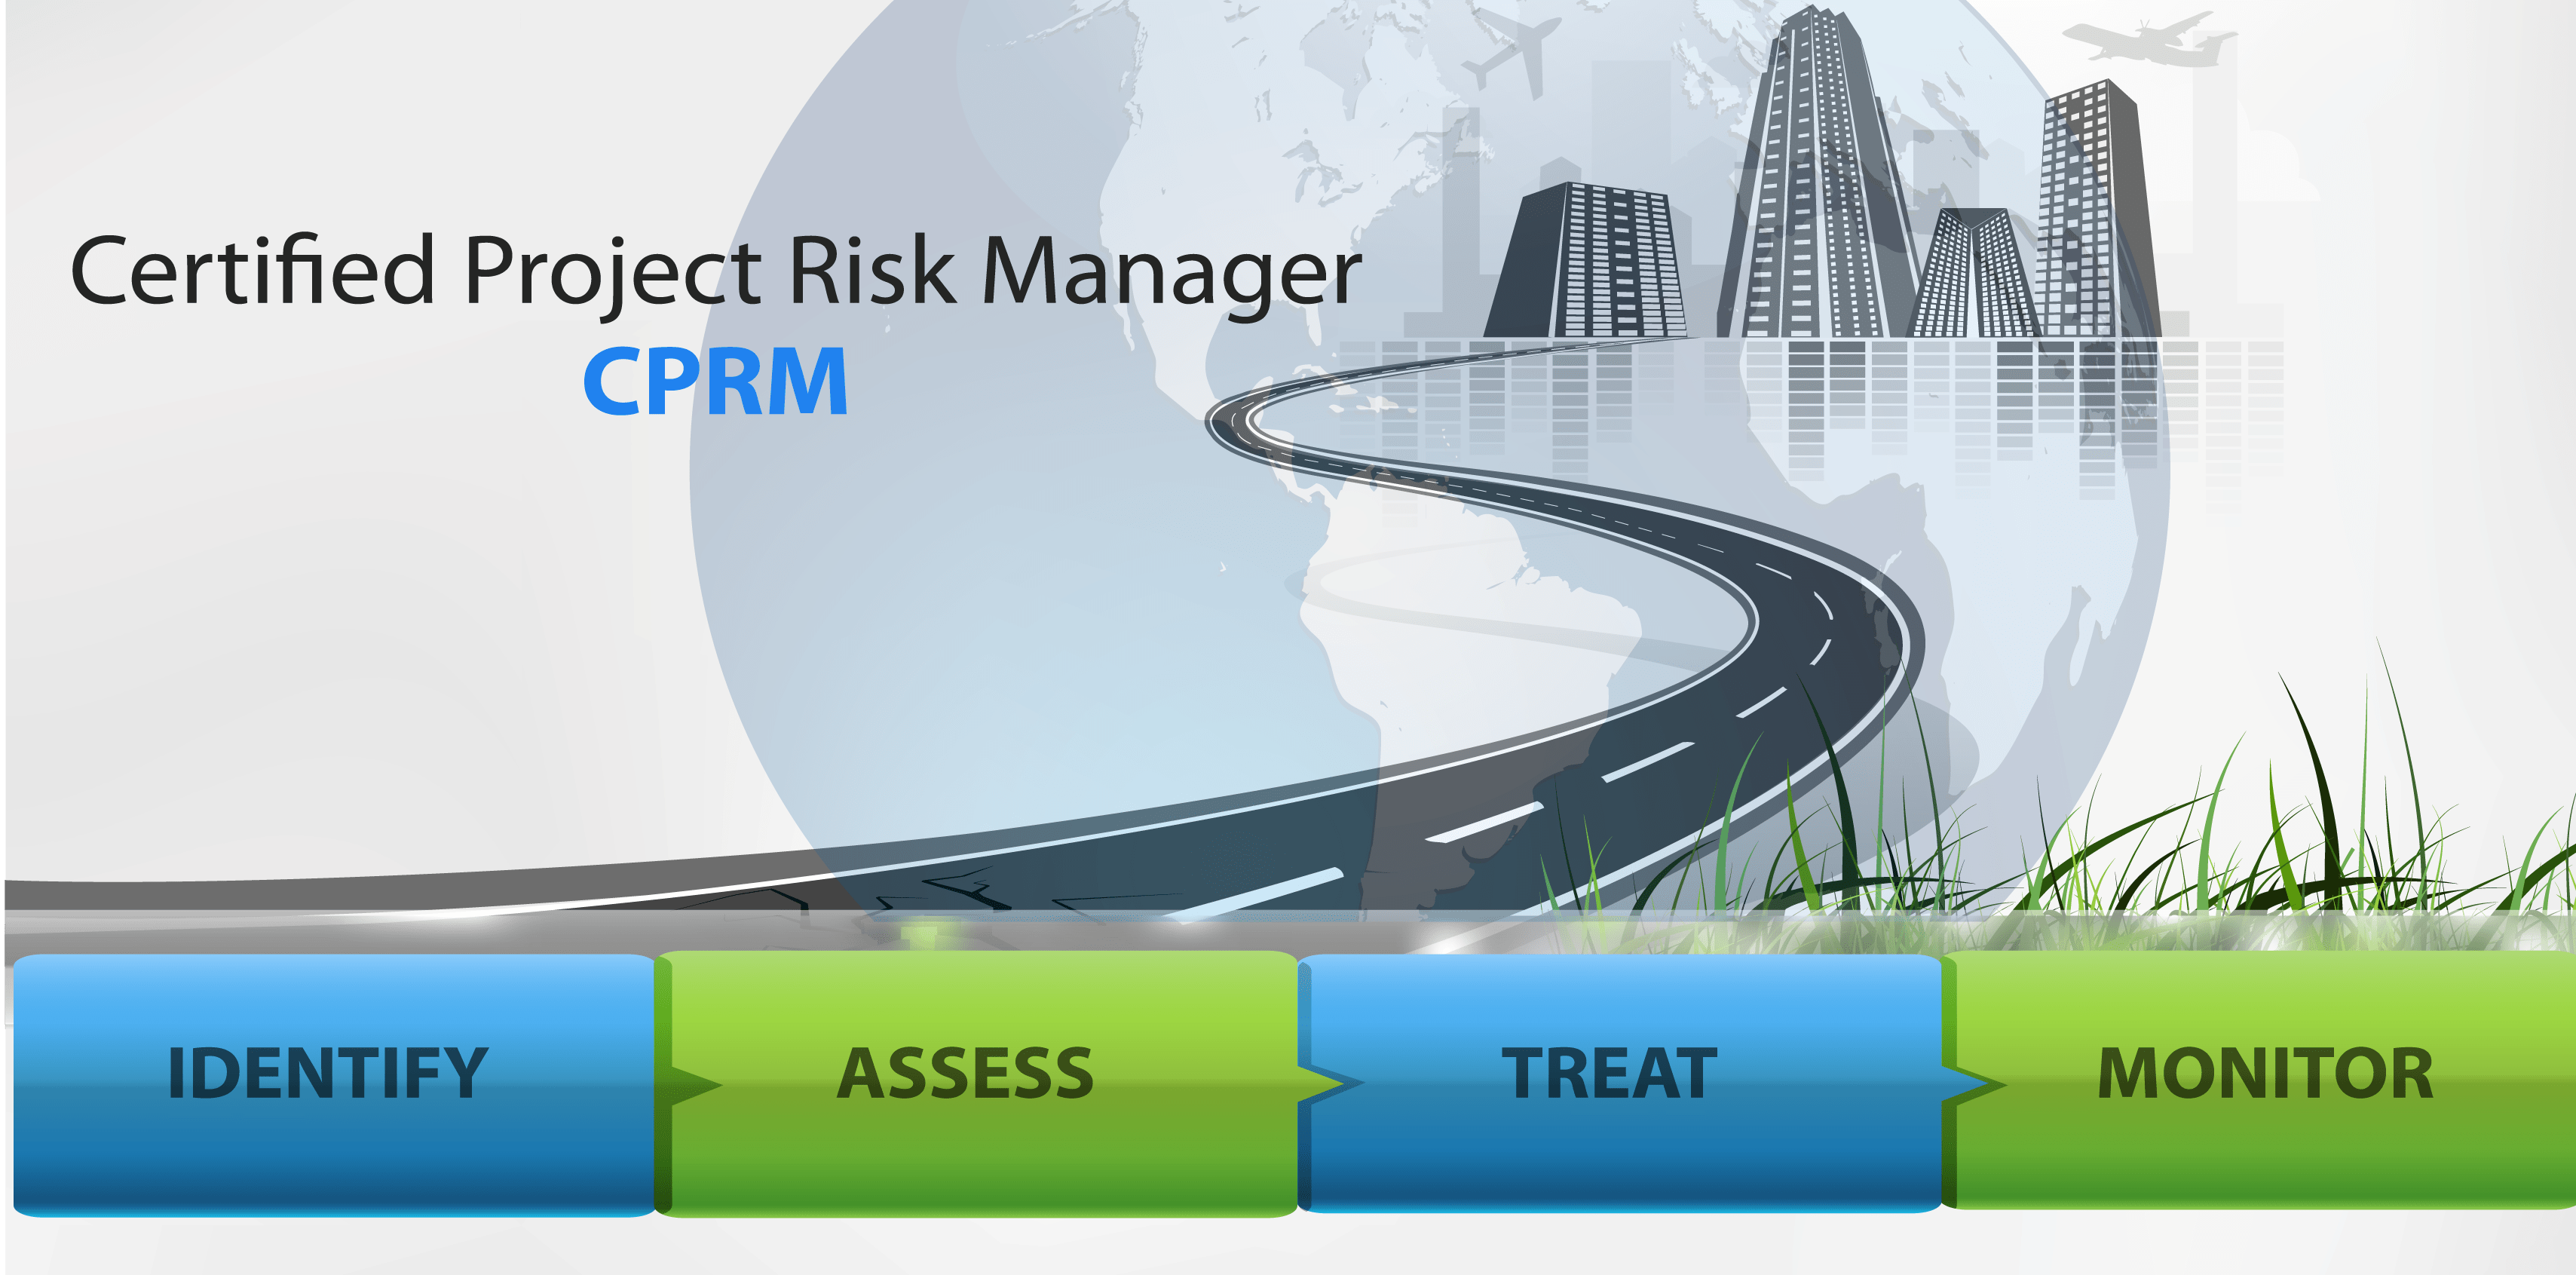 14 Certified Project Risk Manager CPRM